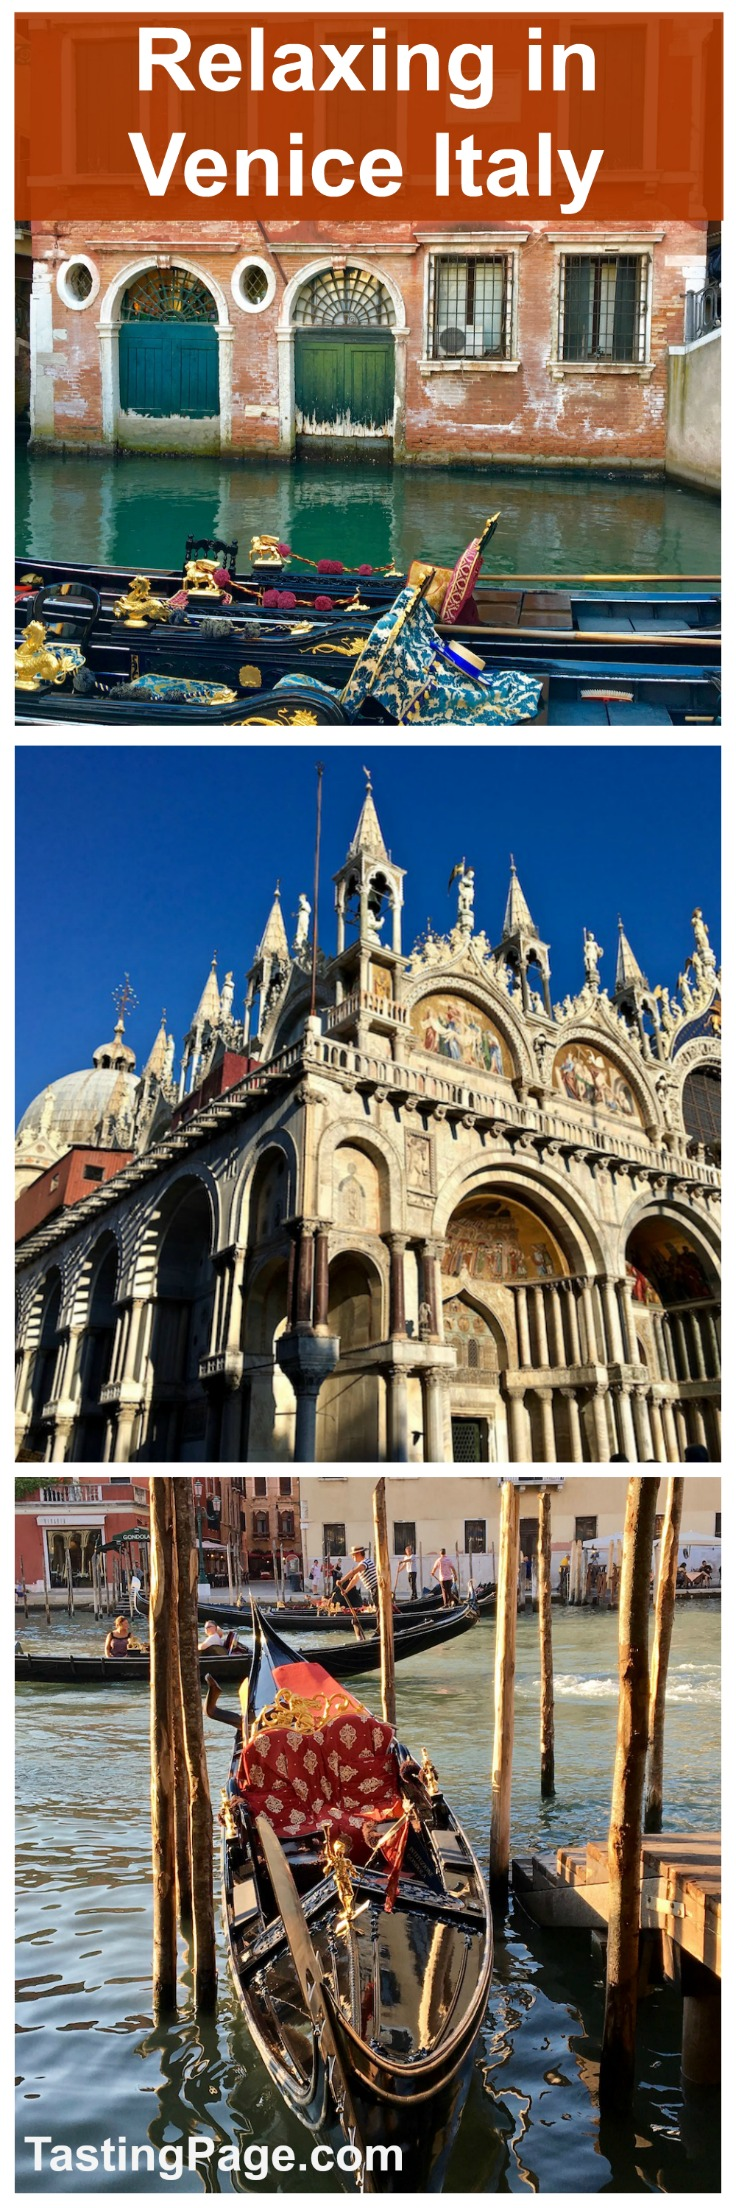 How to Relax and soak in Venice Italy | TastingPage.com